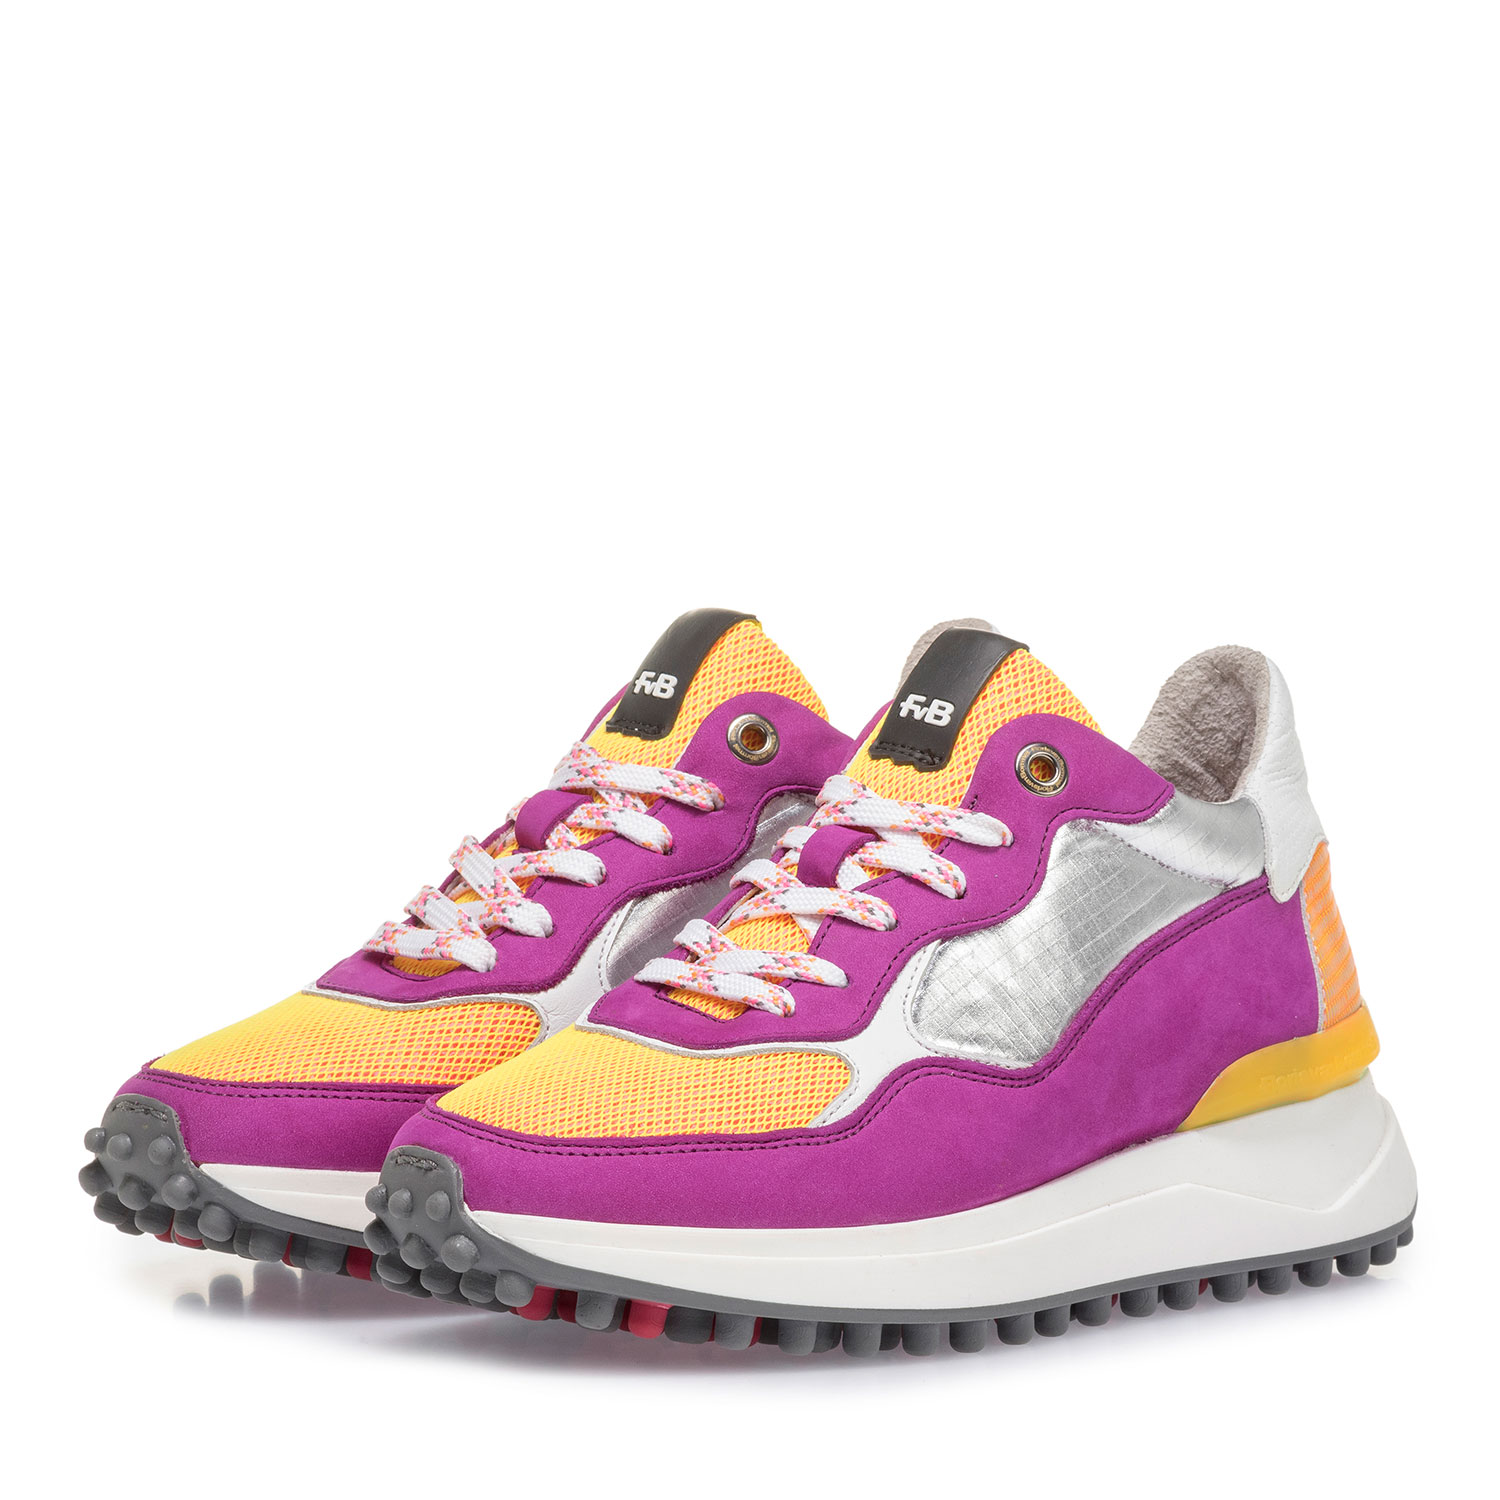 85307/02 - Violet nubuck leather sneaker with yellow details